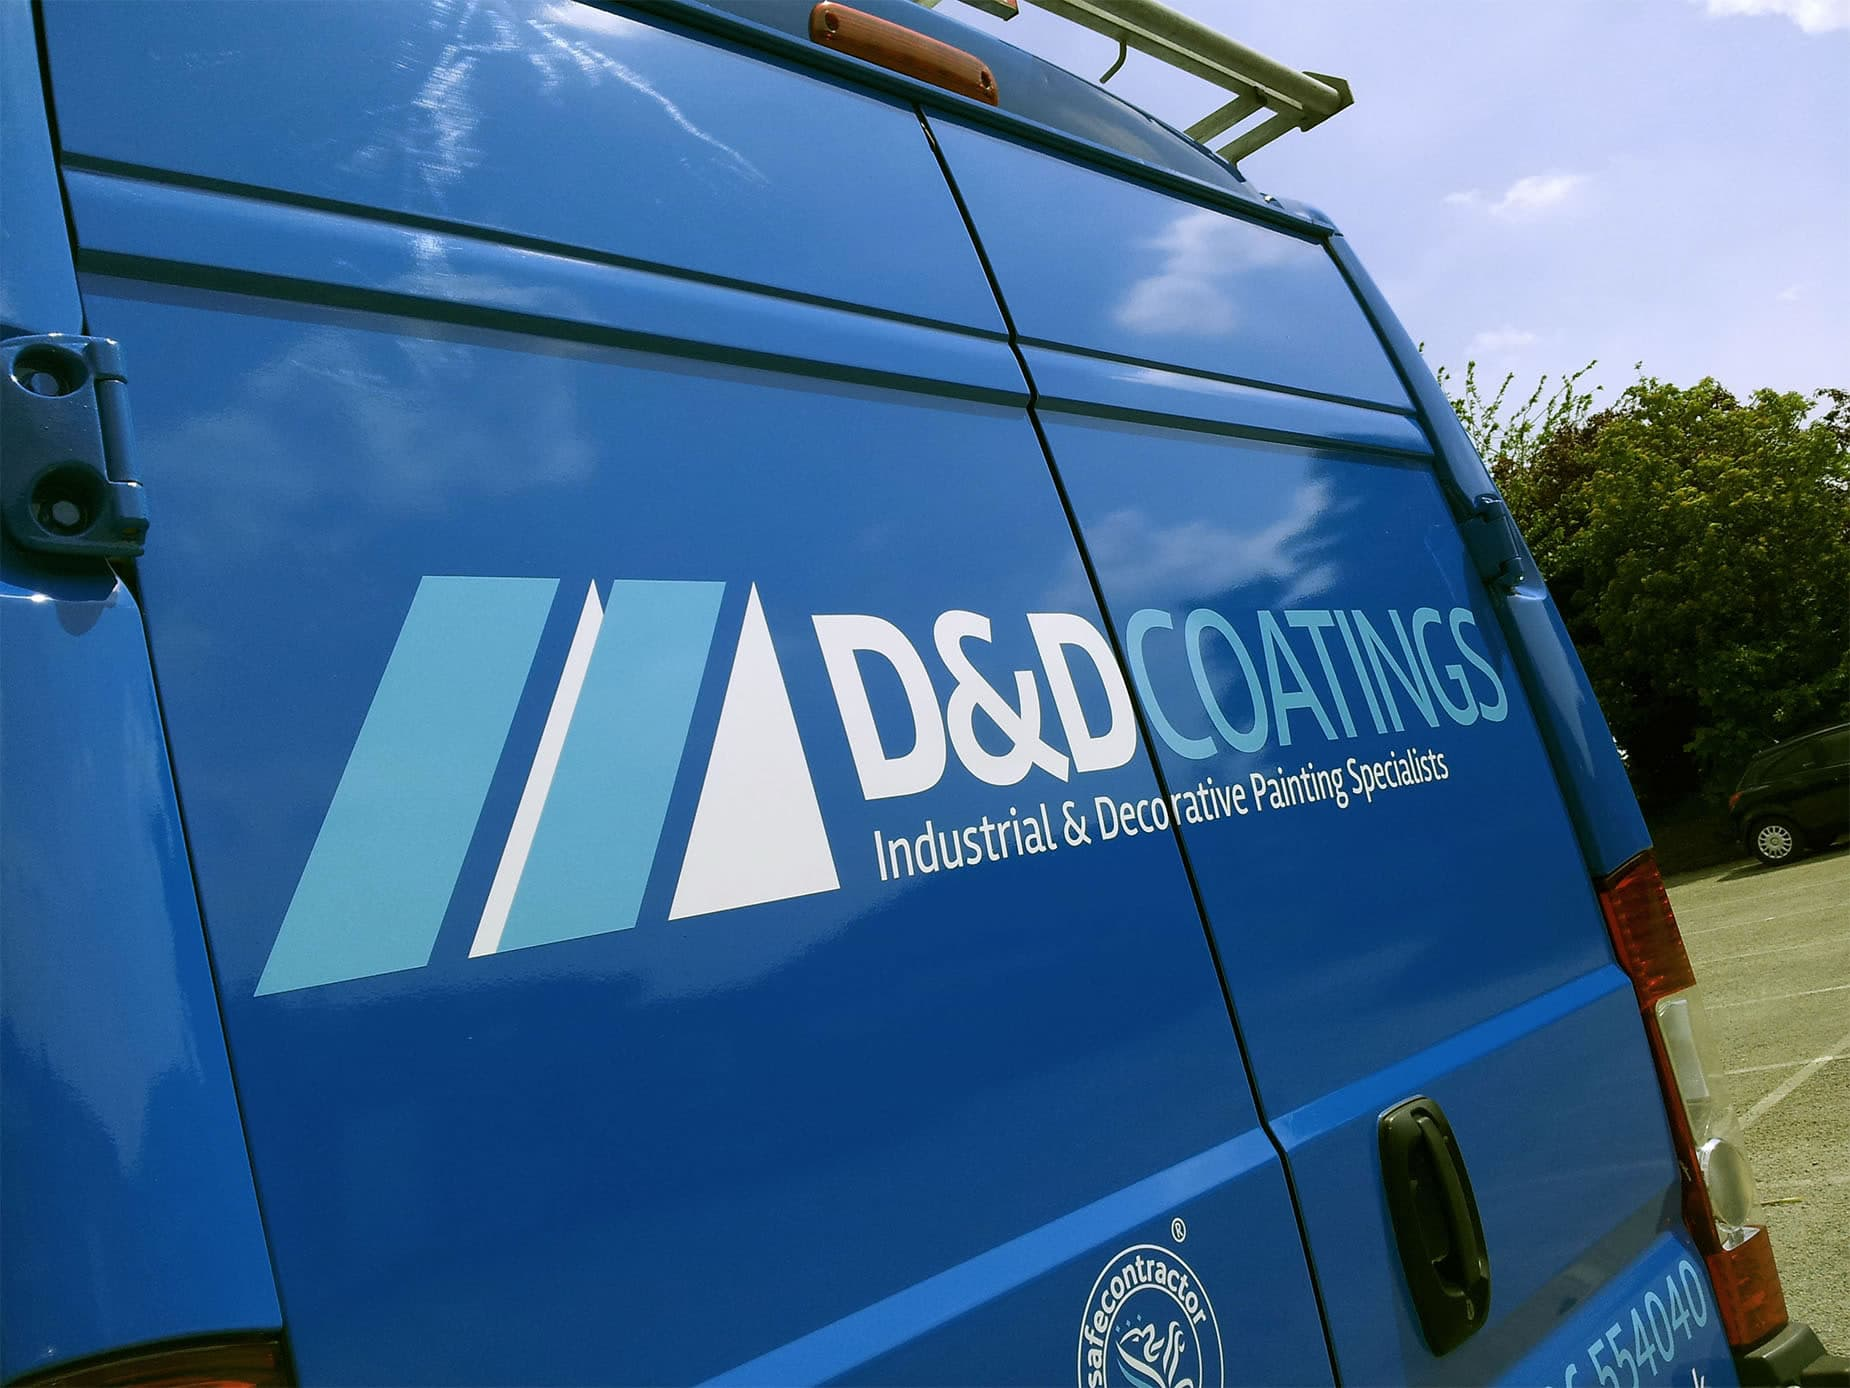 d and d coatings van rear